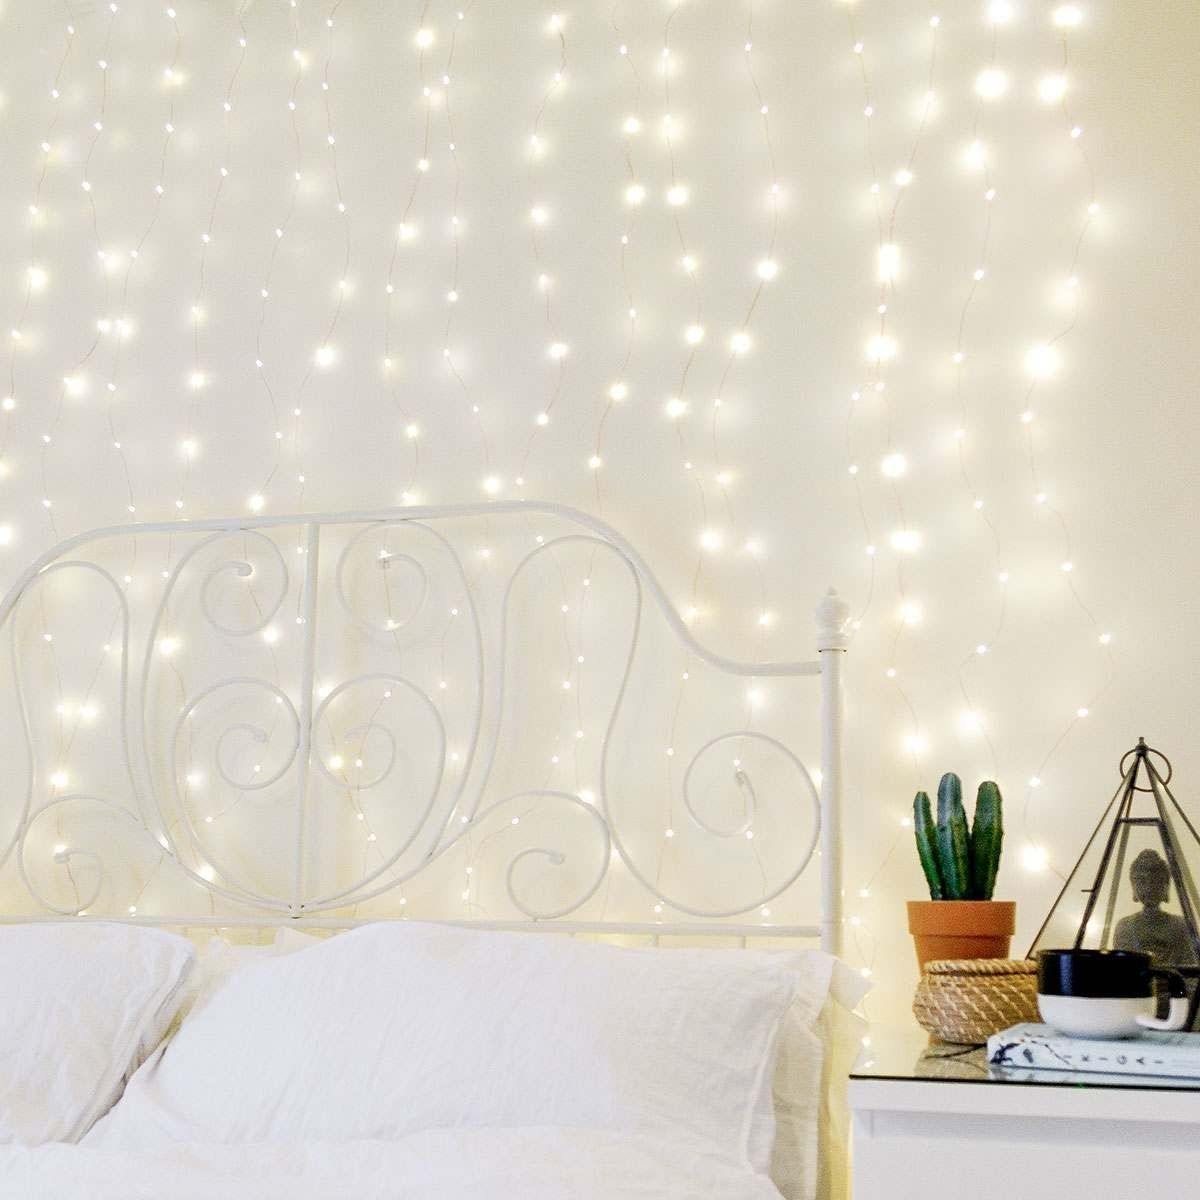 2m X 2m Plug In Copper Firefly Wire Curtain Lights 400 Warm White Leds In 2020 Curtain Lights Fairy Light Curtain Curtains